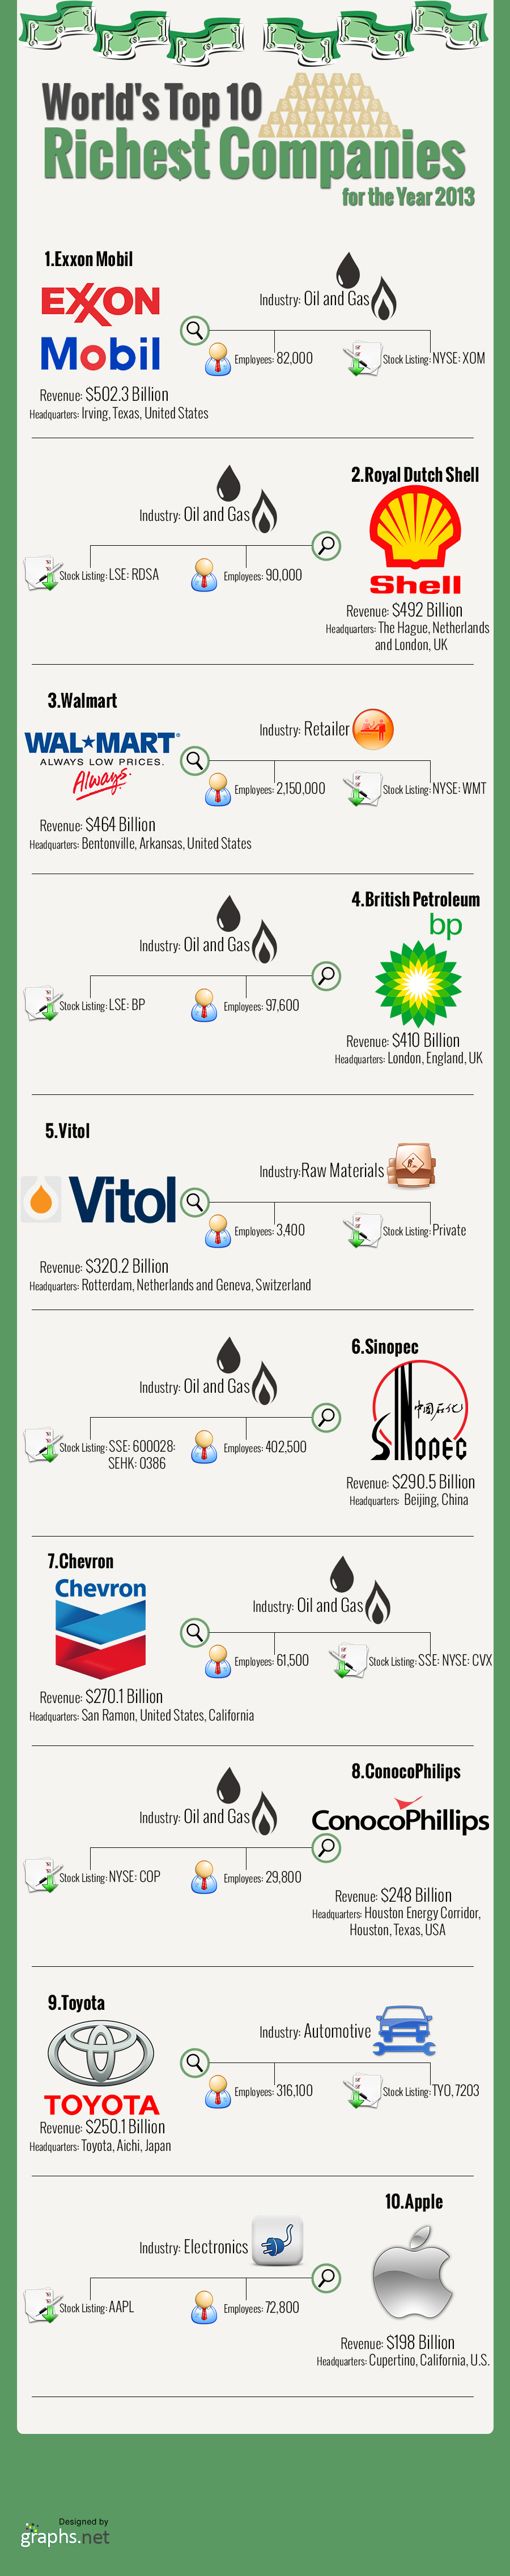 World's Top 10 Richest Companies for the Year 2013